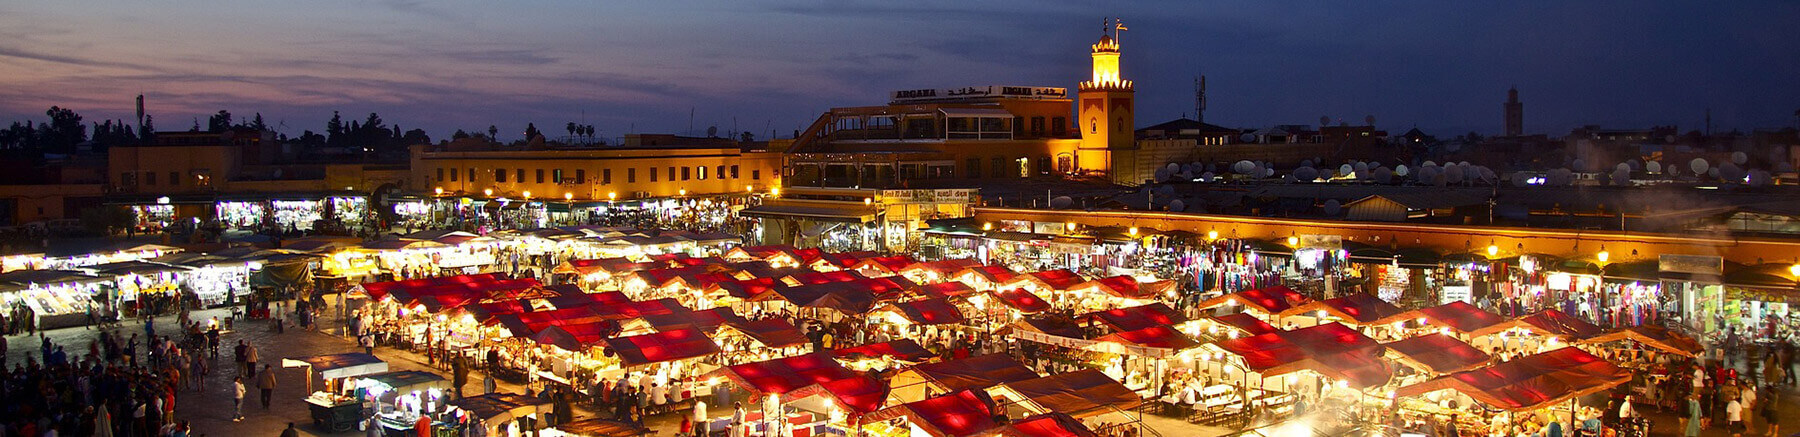 Moroccan souks by night in Marrakech city, Morroco